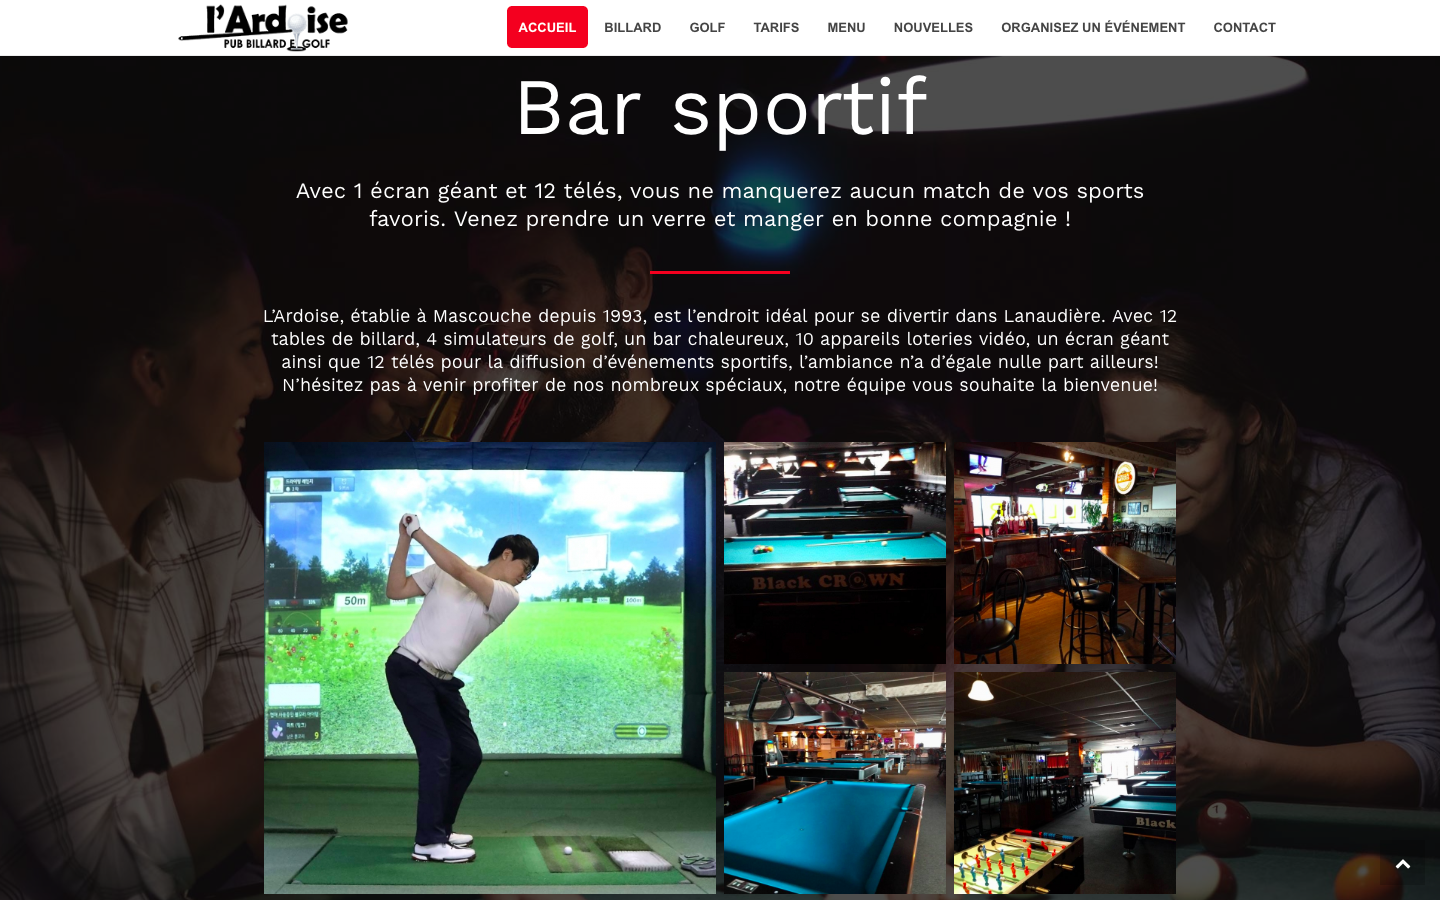 L'Ardoise pub billard et golf par 3leadership Marketing web pour PME 3